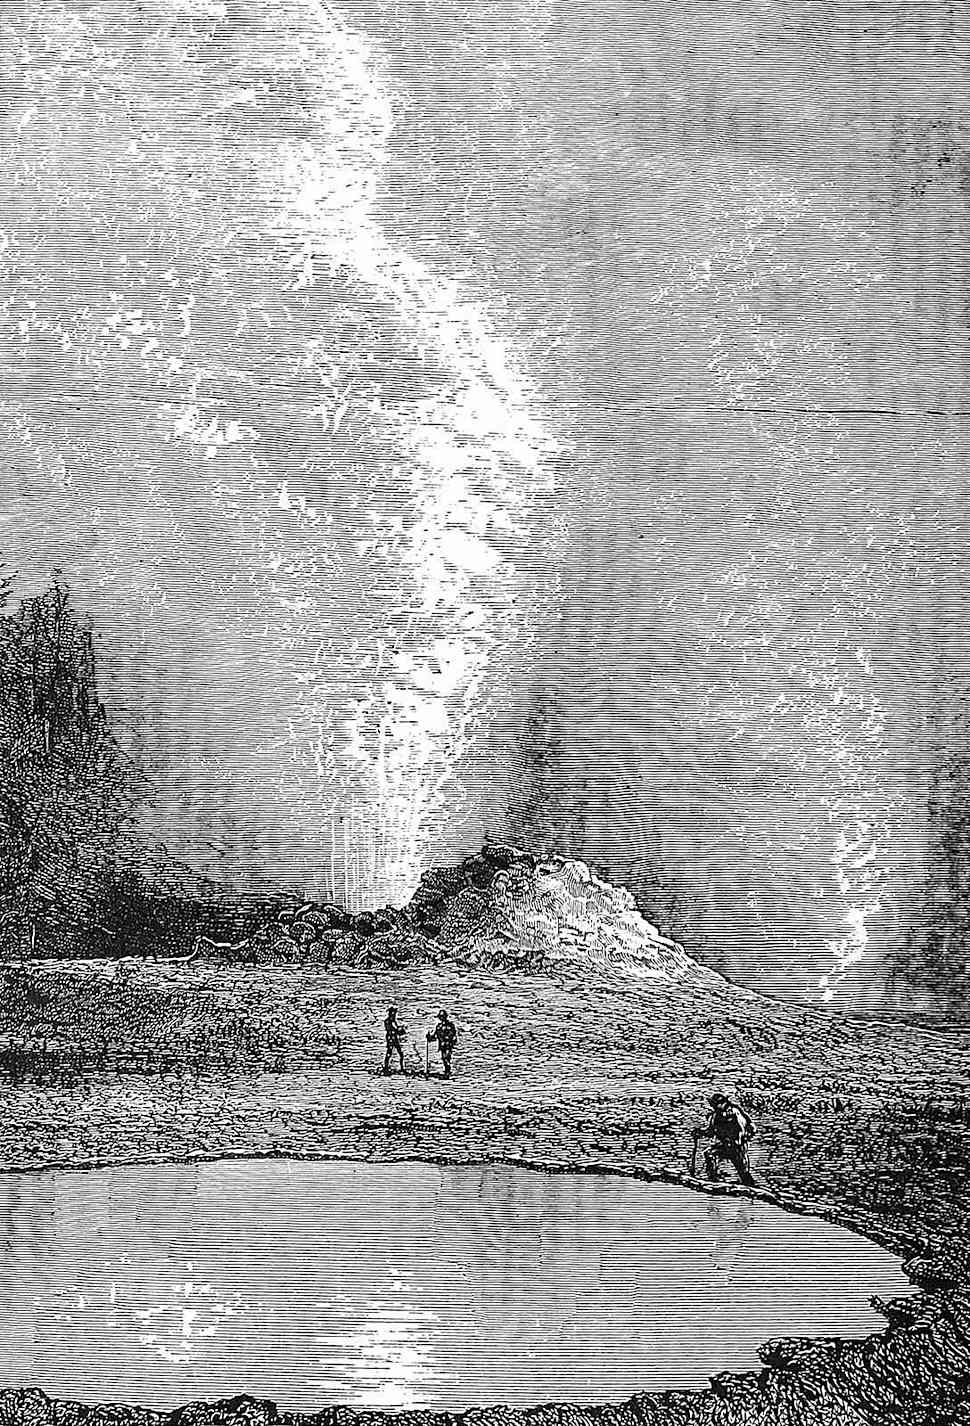 an 1800s geyser pool illustrated